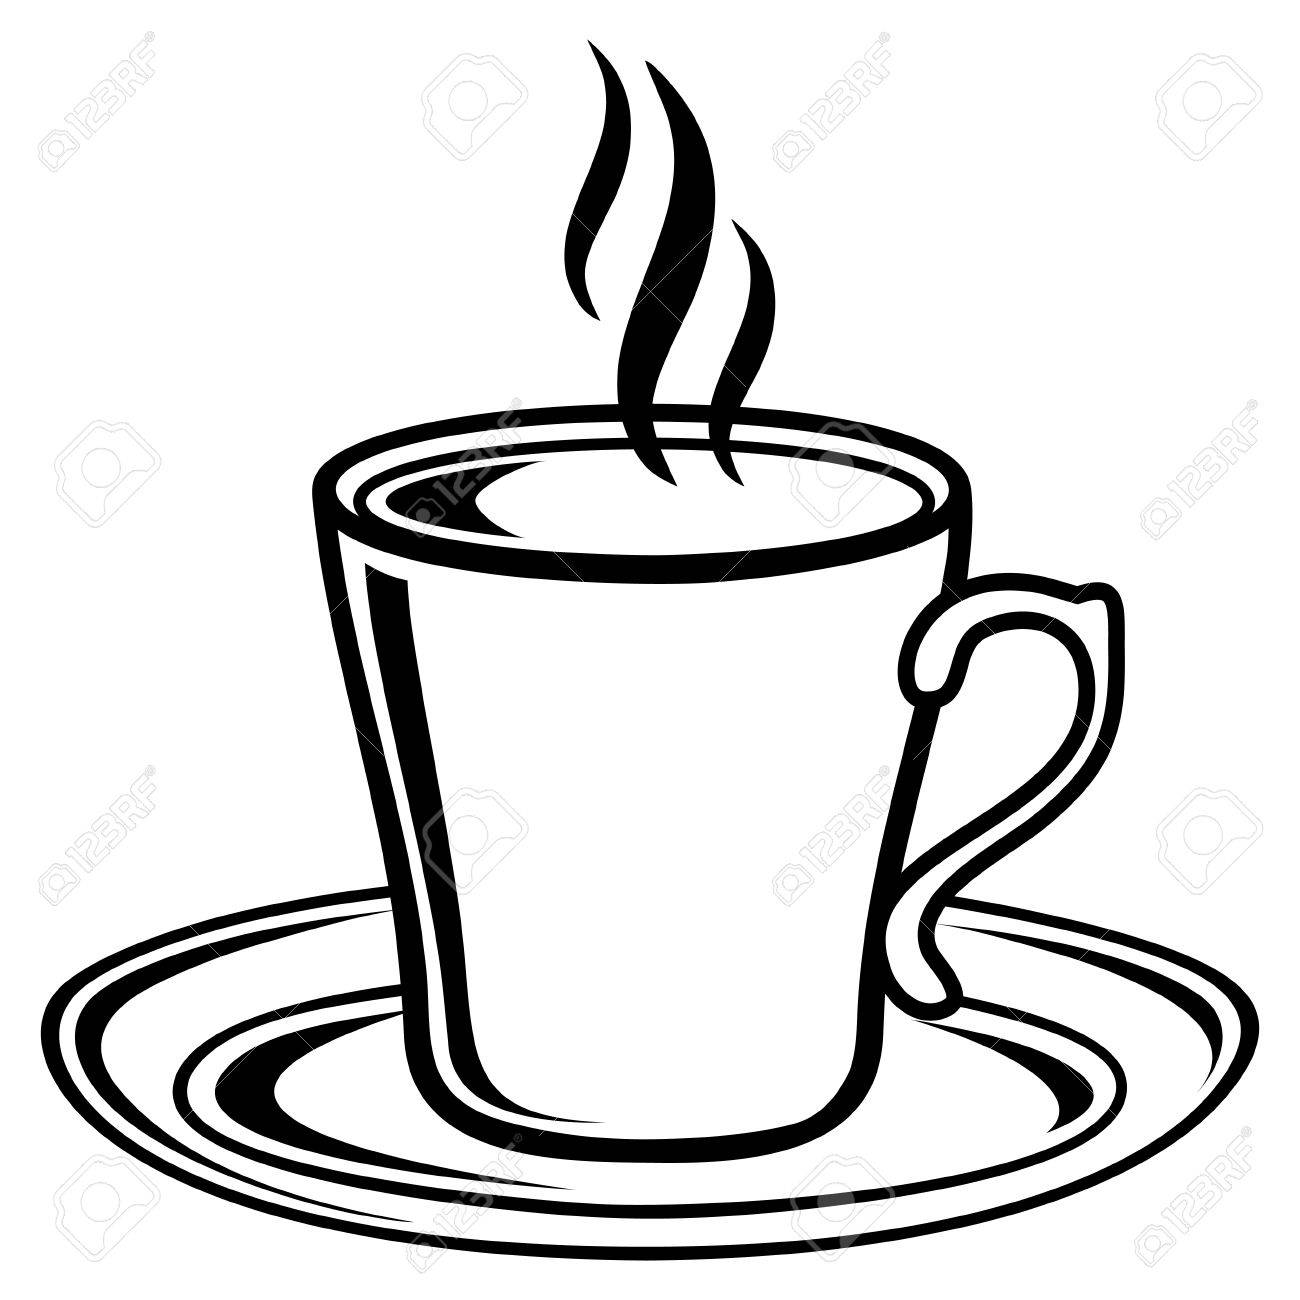 Coffee cup black and white. Clipart station